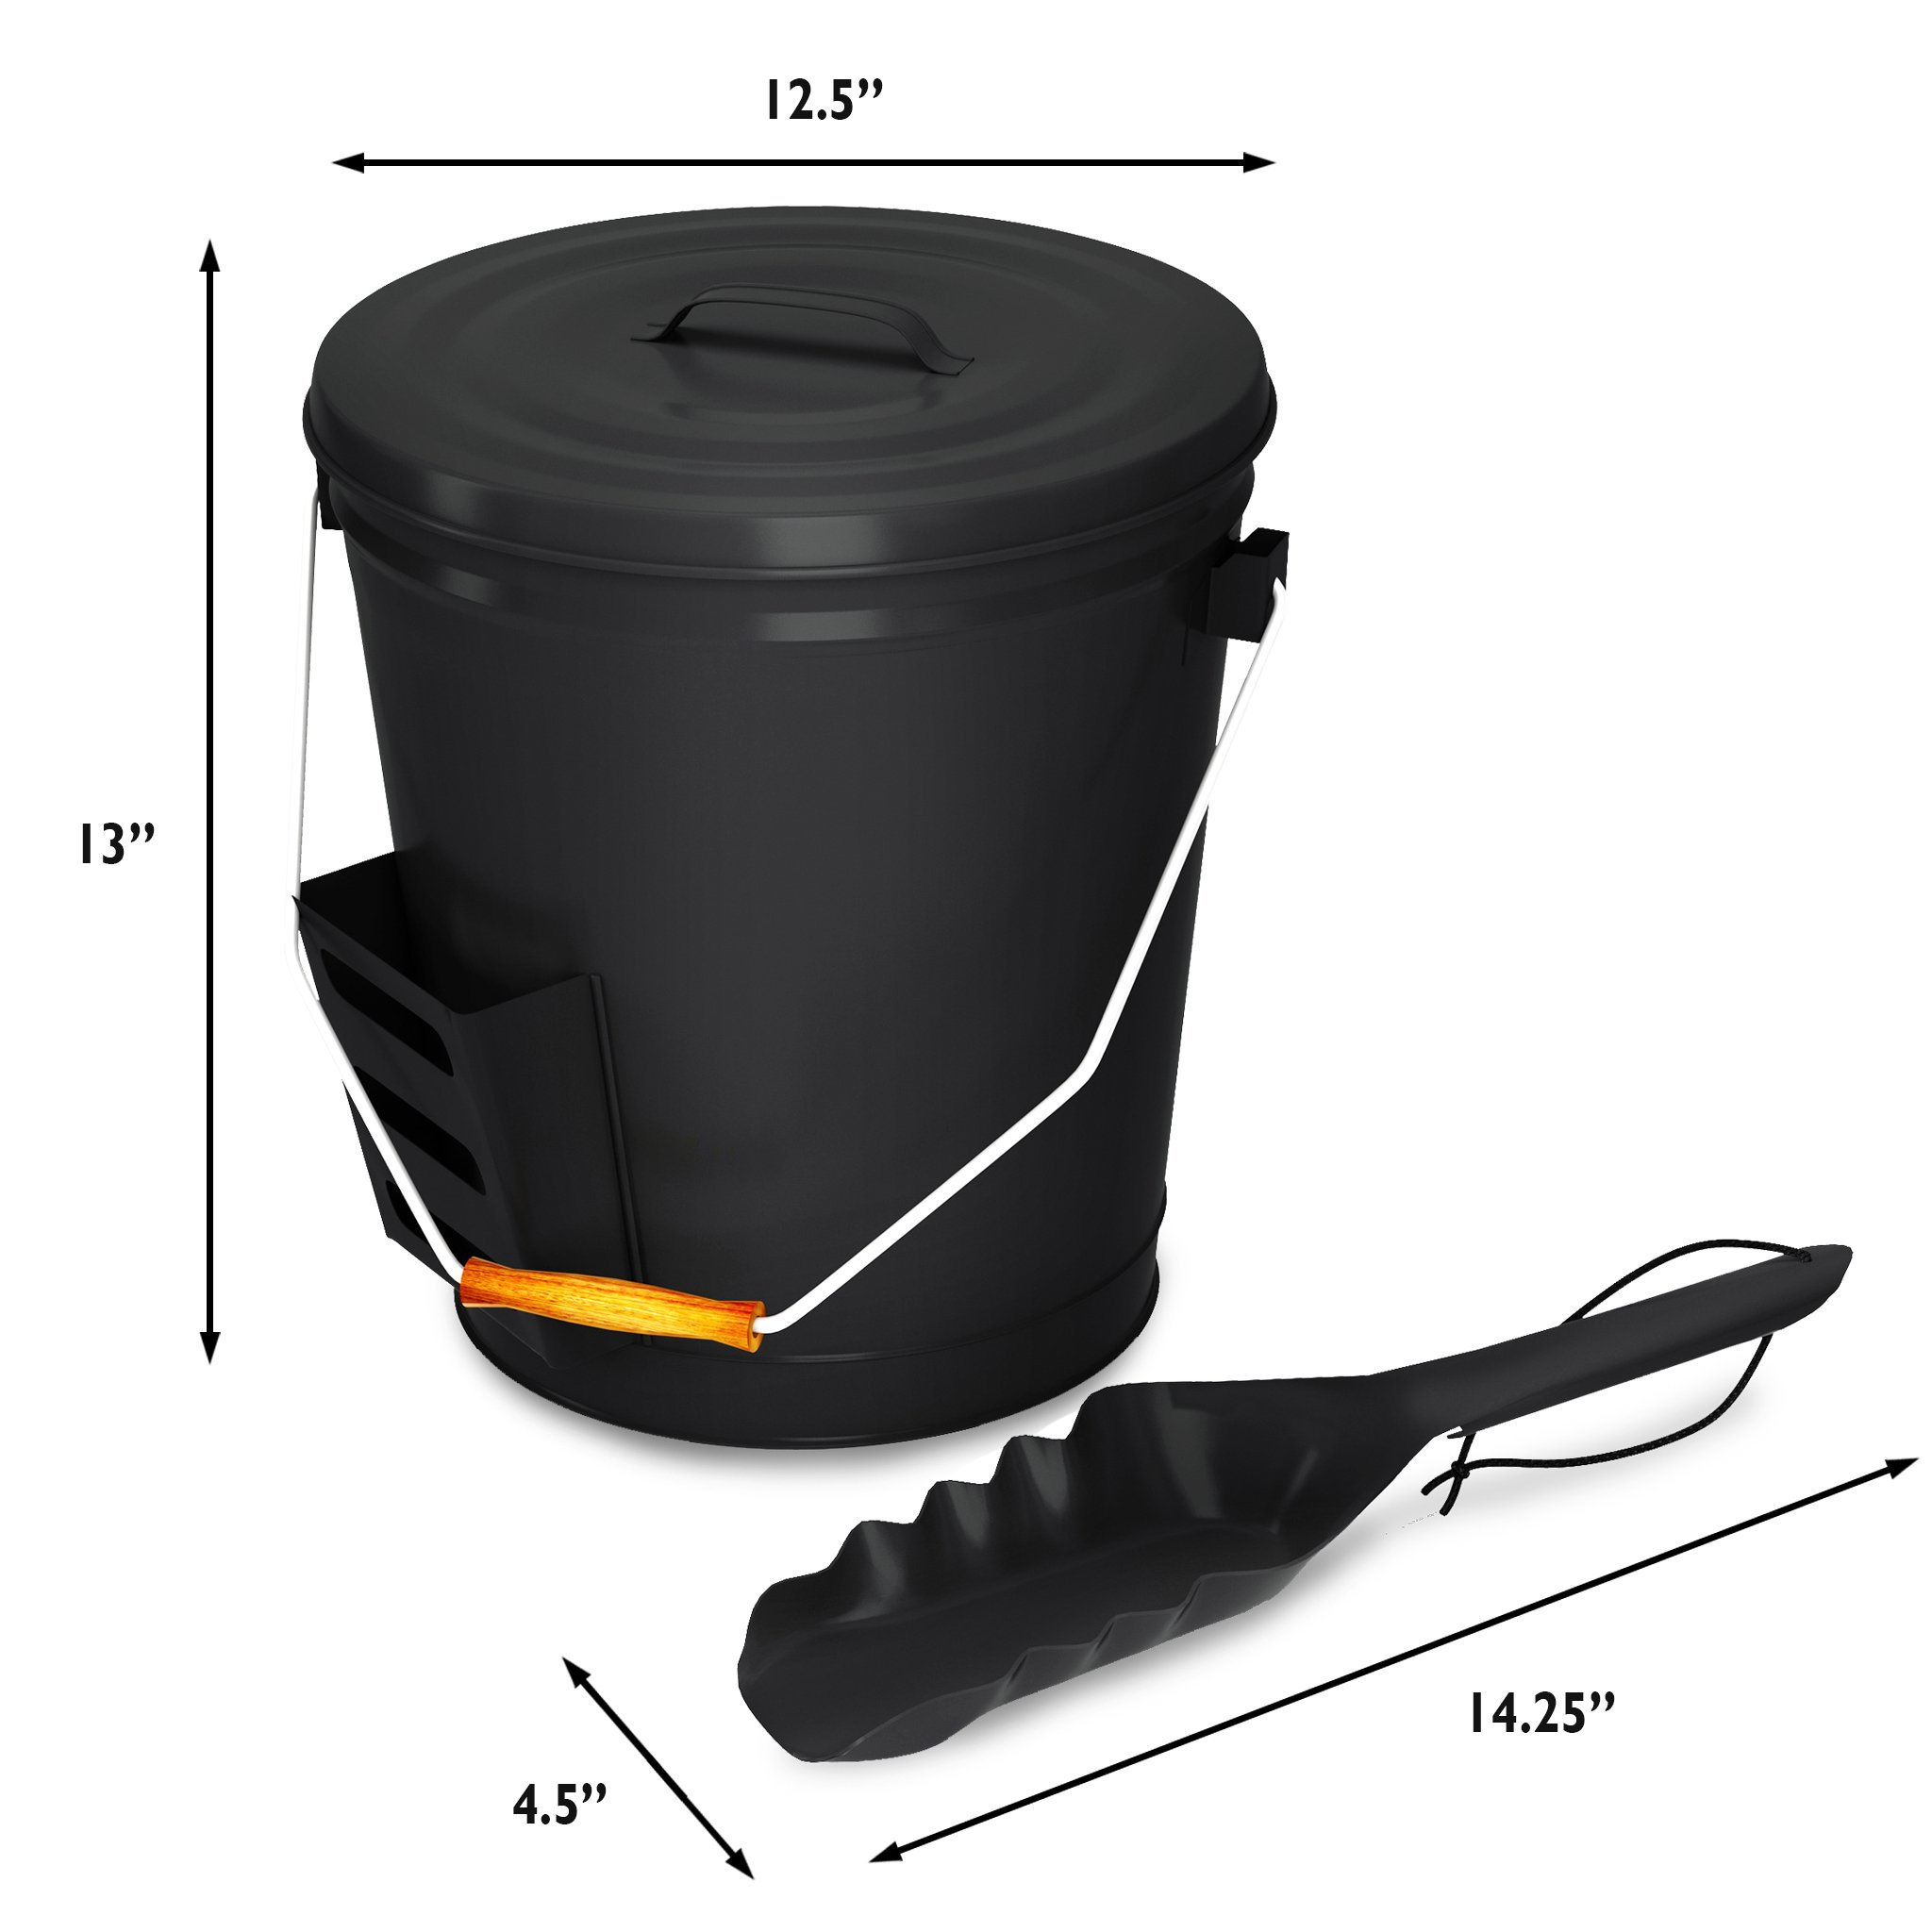 Home-Complete HC-7004 4.75 Gallon Black Ash Bucket with Lid and Shovel-Essential Tools for Fireplaces, Fire Pits, Wood Burning Stoves-Hearth Accessories by Home-Complete (Image #7)